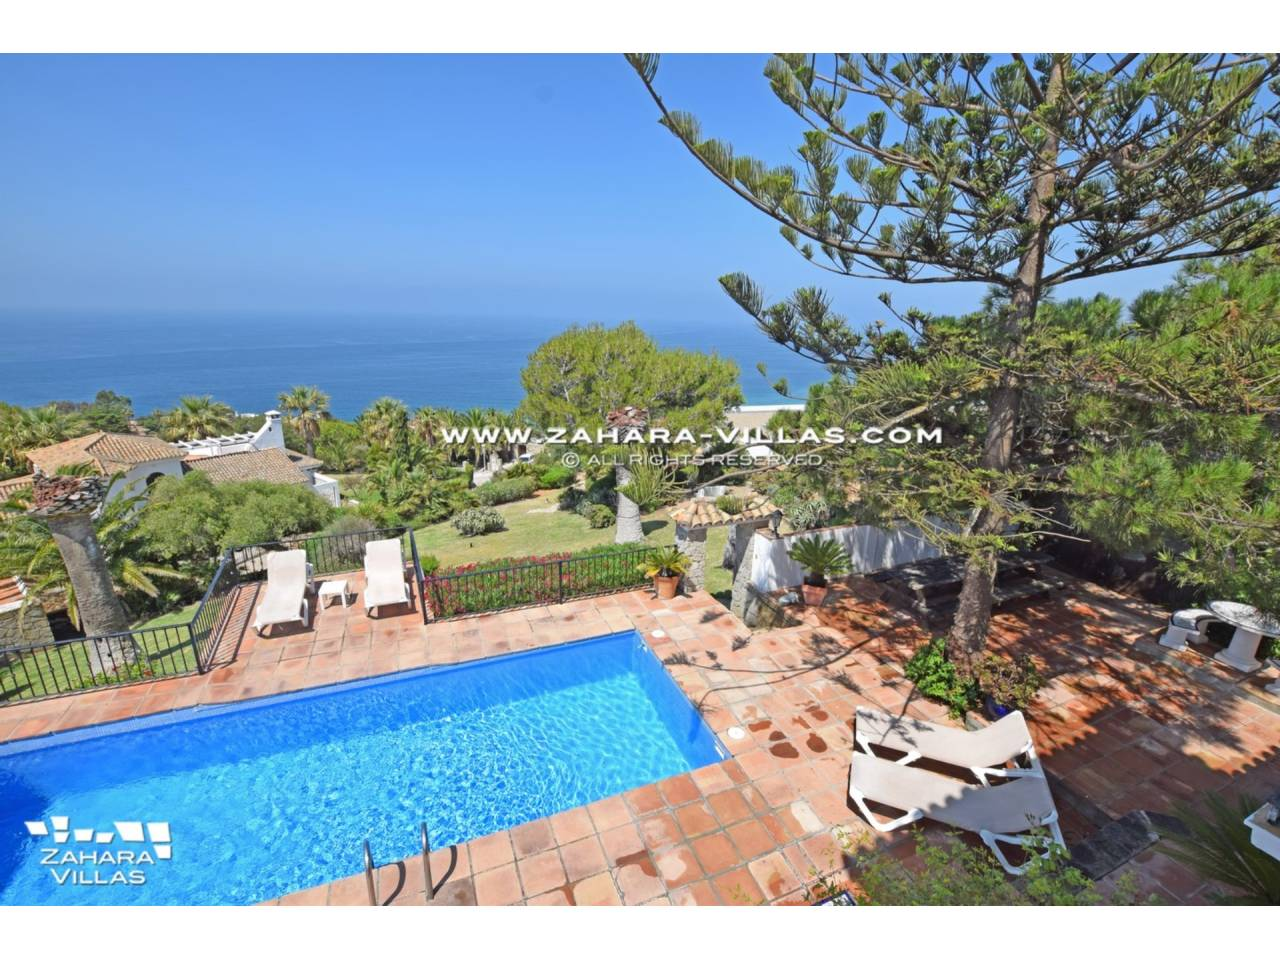 Imagen 2 de Wonderful Villa for sale in Atlanterra-Zahara de los Atunes